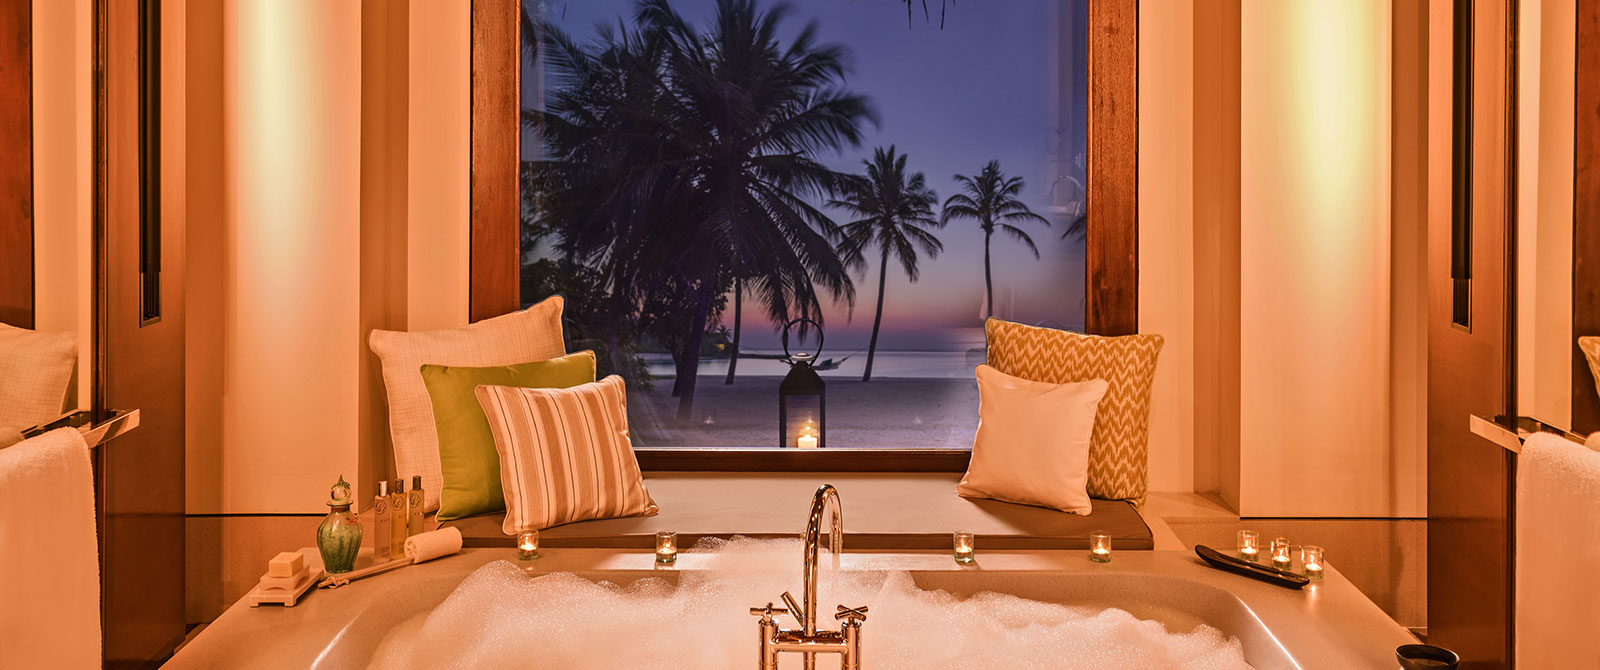 One&Only Reethi Rah Resort Maldives - Beach Villa Bath